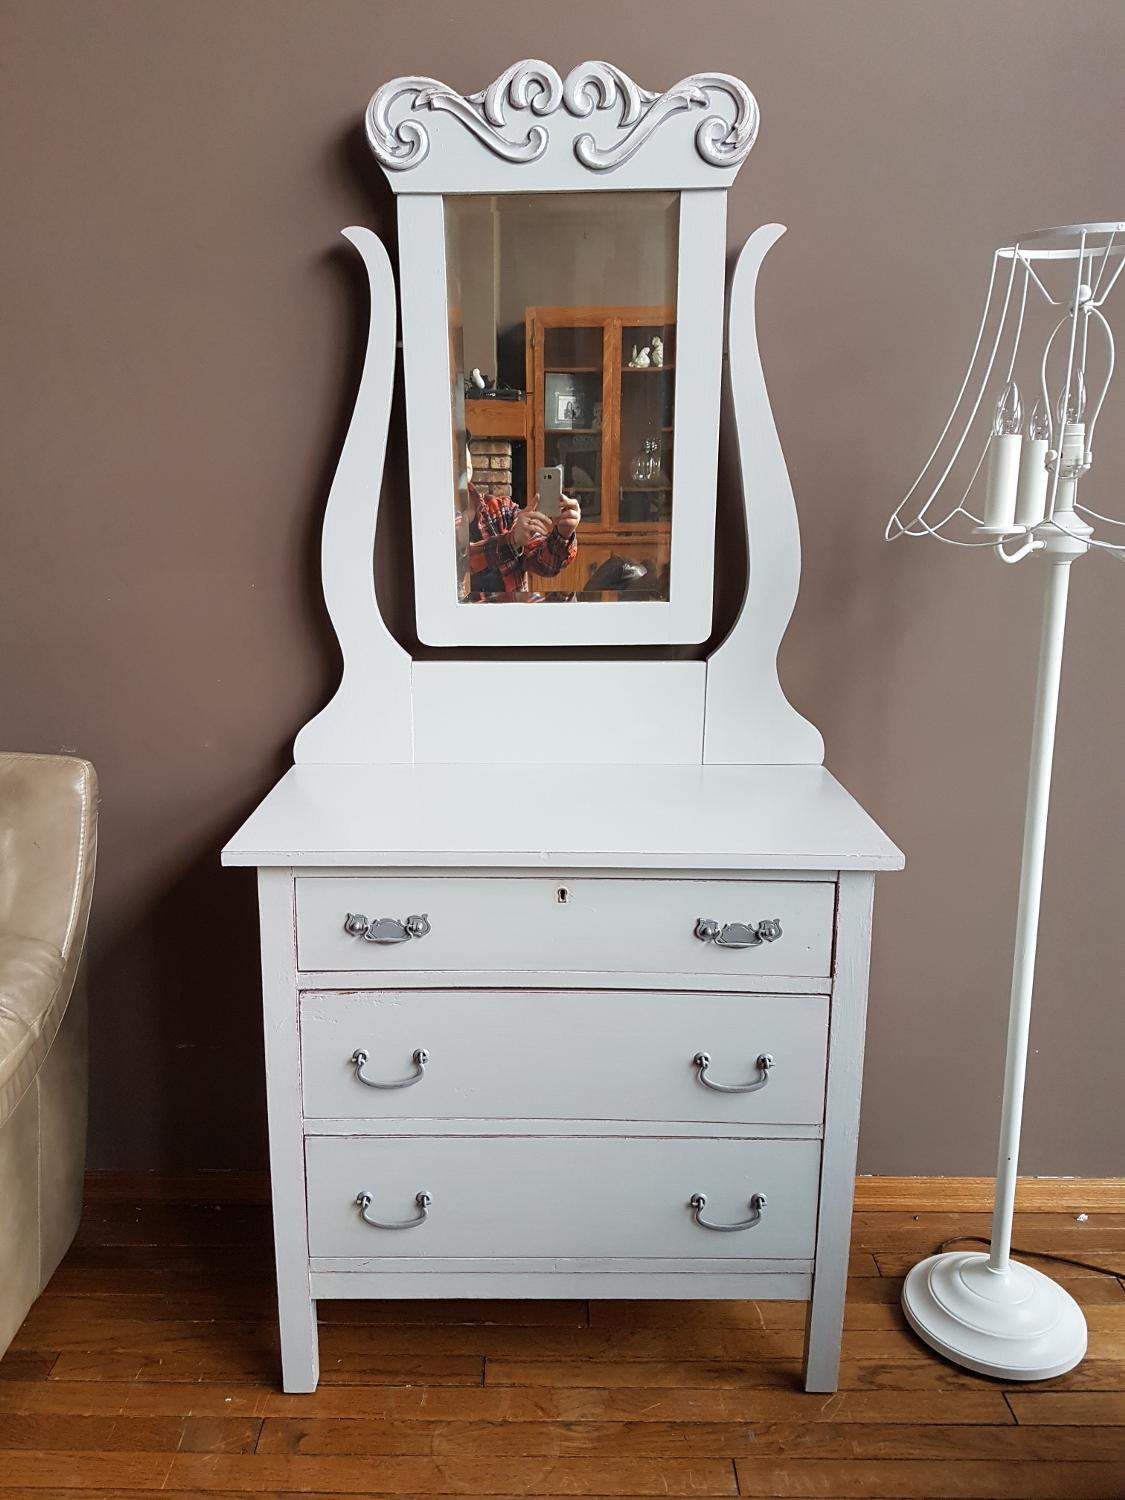 Best Antique Dresser And Mirror For Sale In Calgary Alberta For 2017